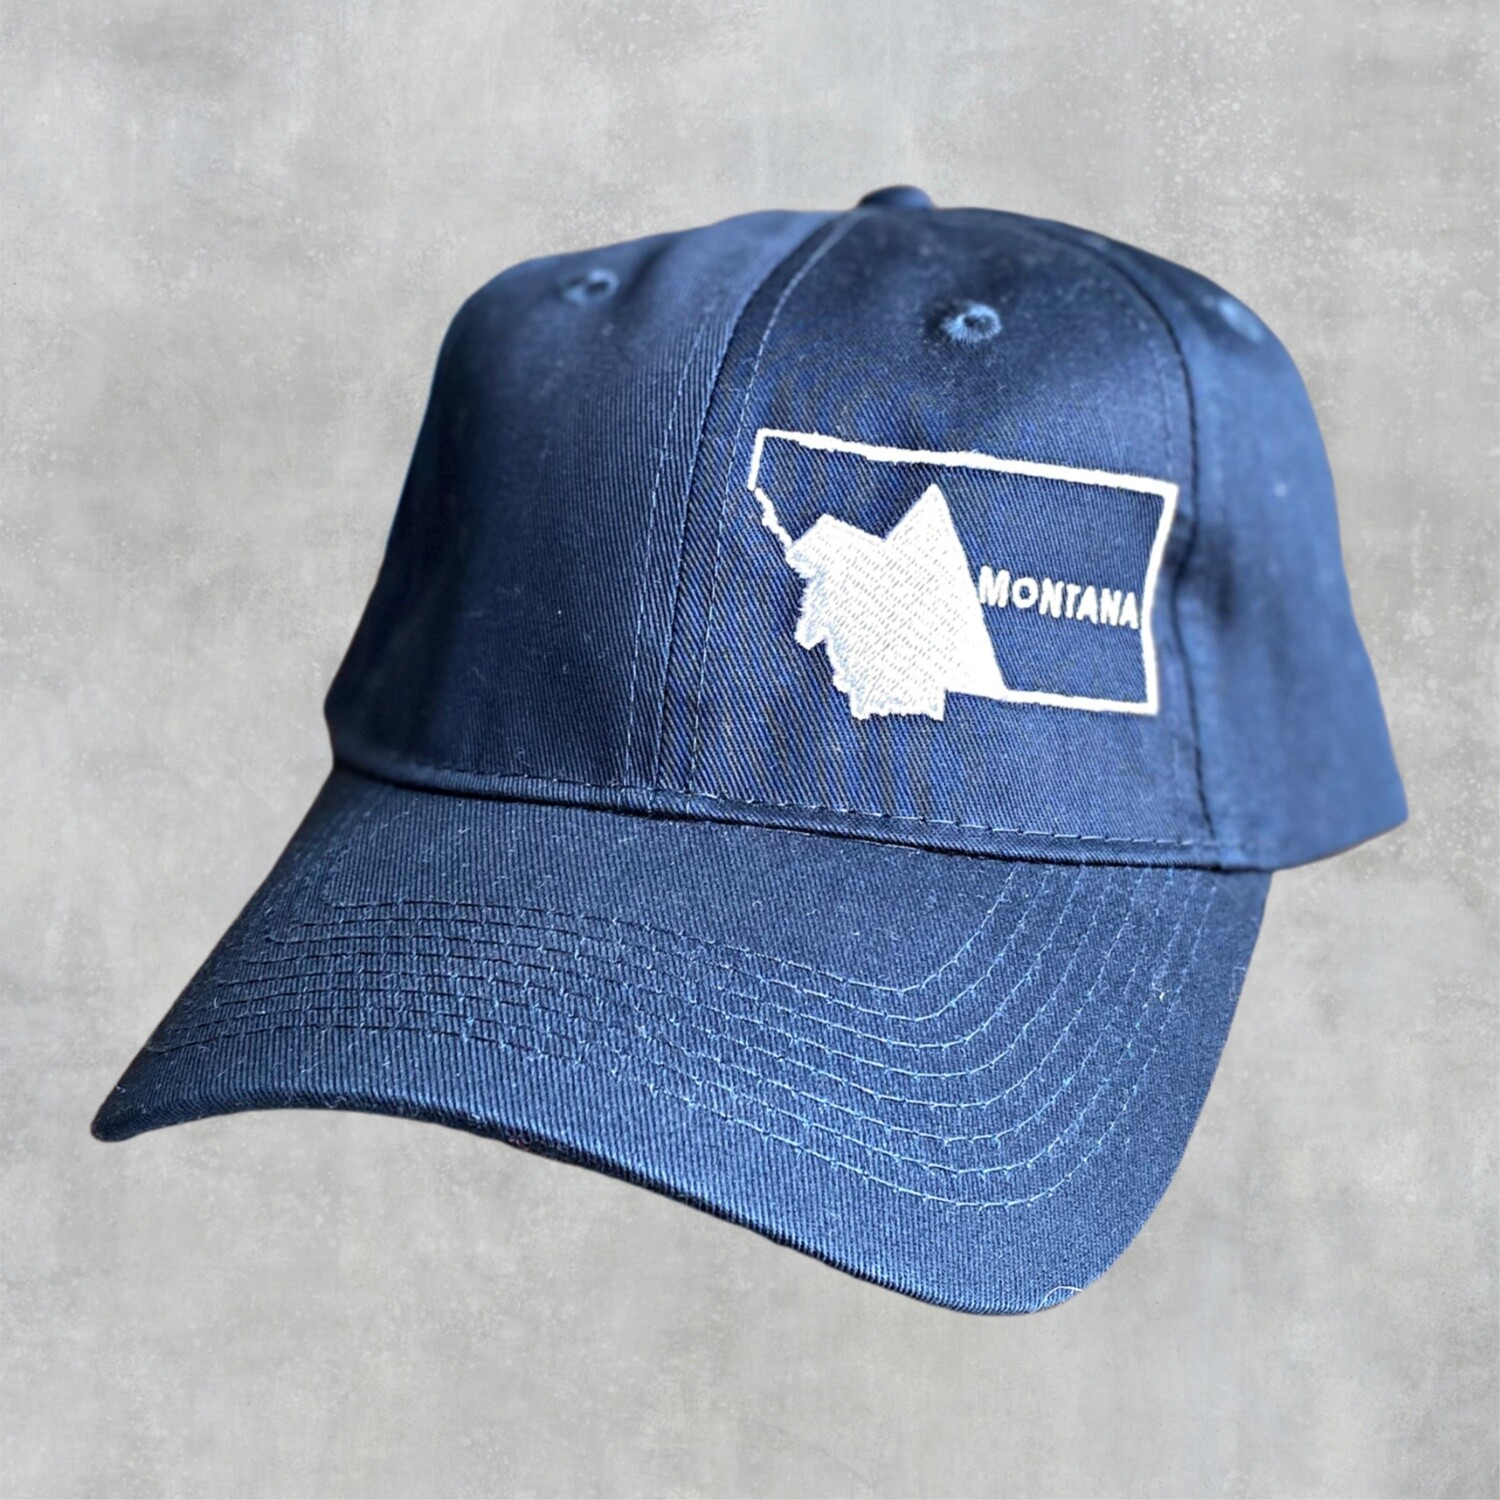 Montana Embroidered Cap